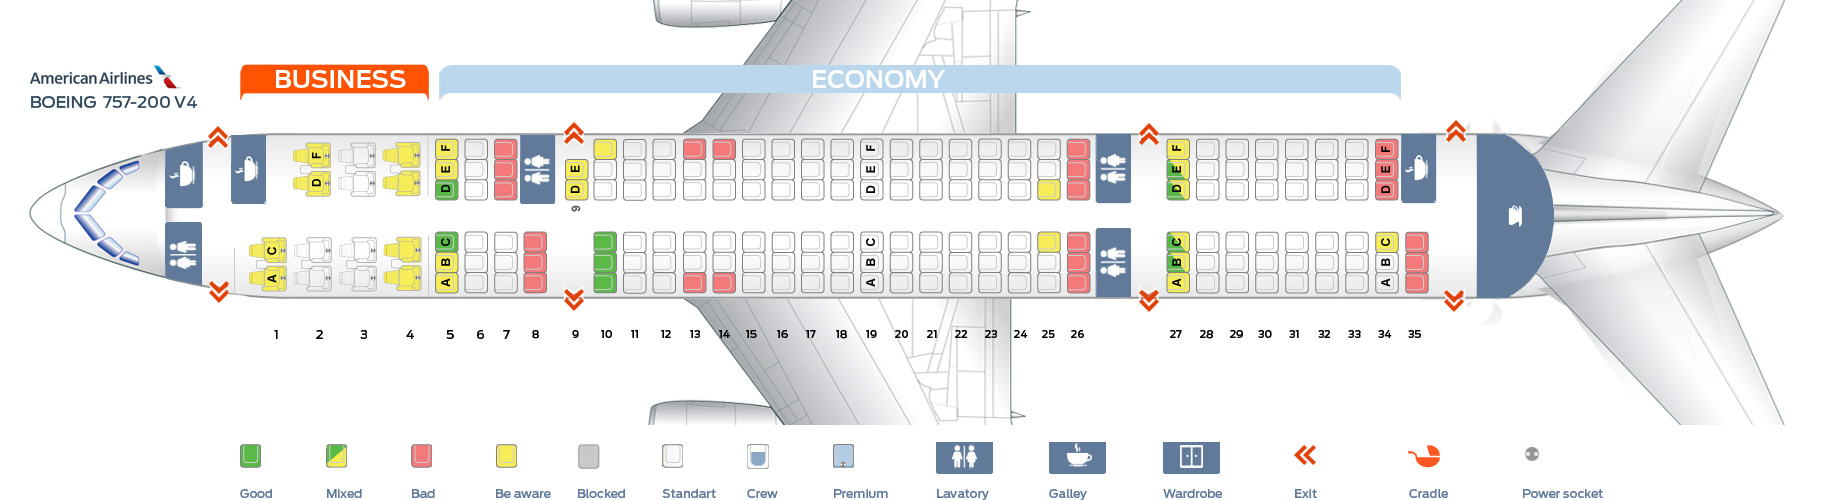 Seat_map_American_Airlines_Boeing_757-200_v4